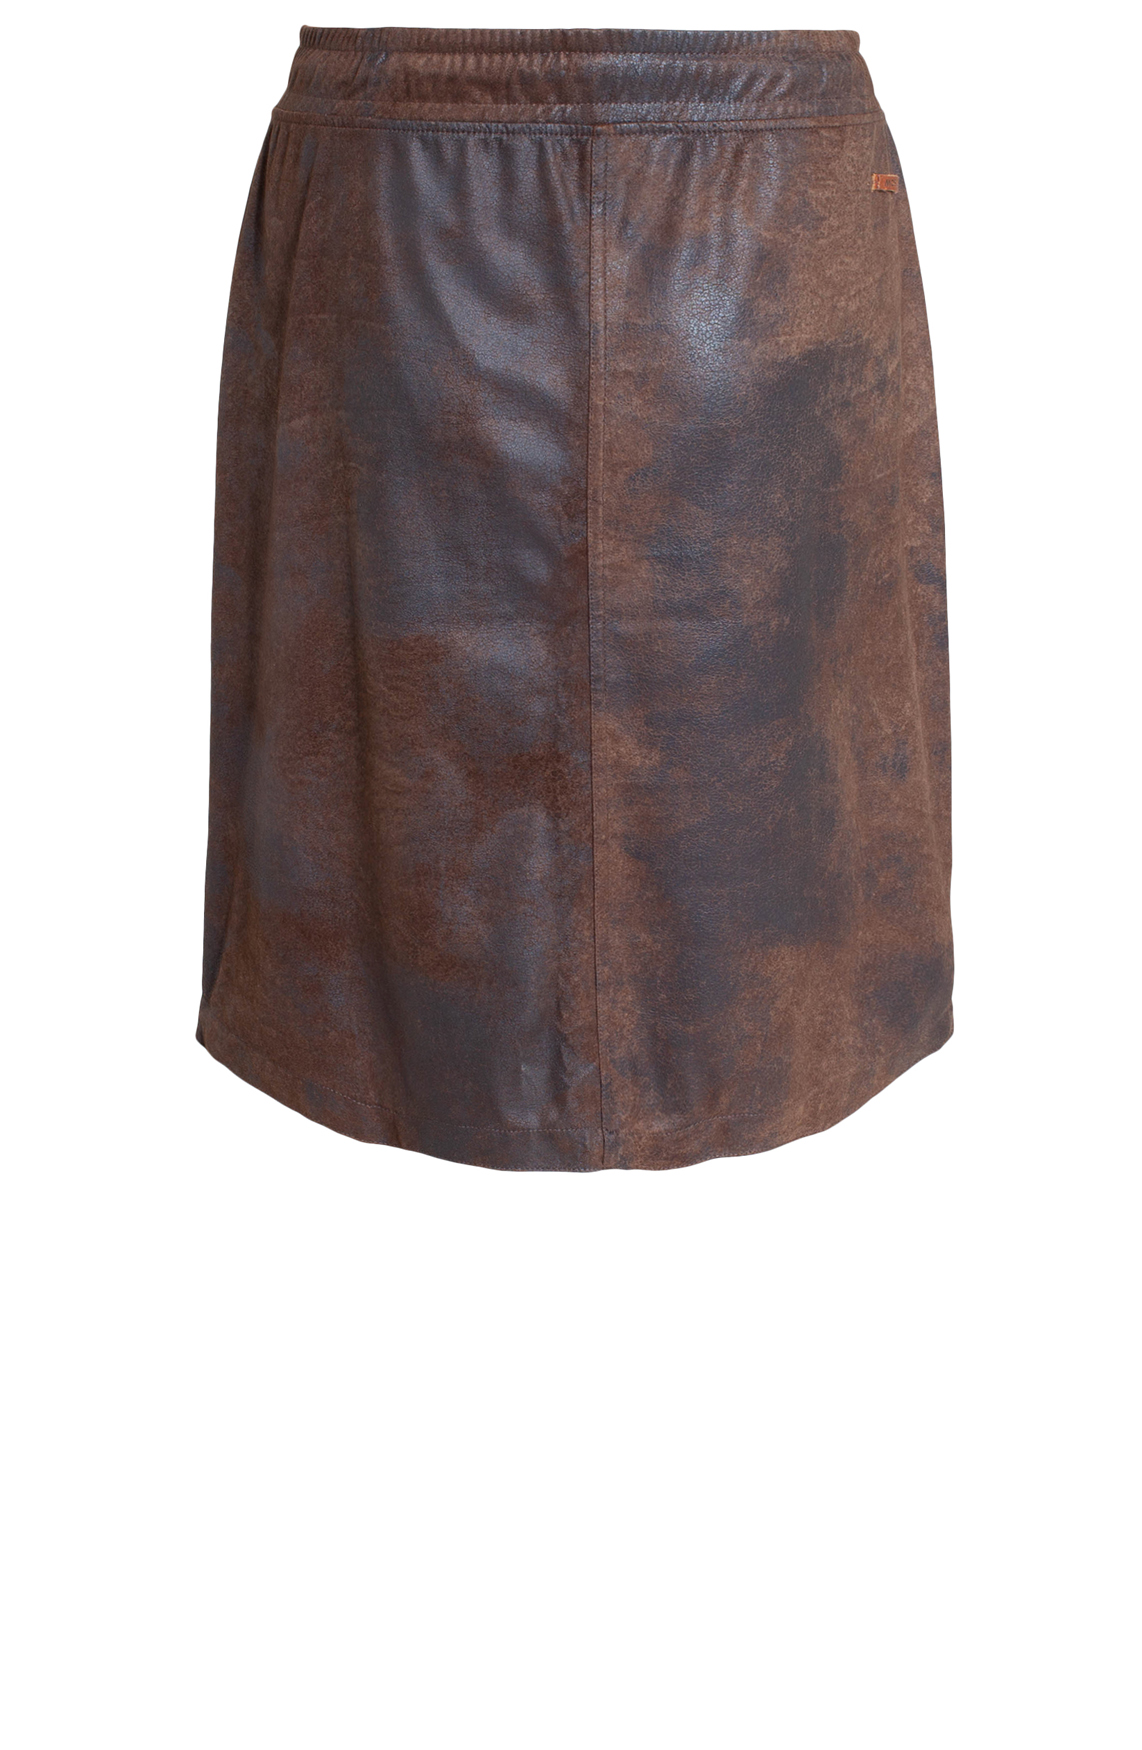 Moscow Dames Fake leather rok Bruin